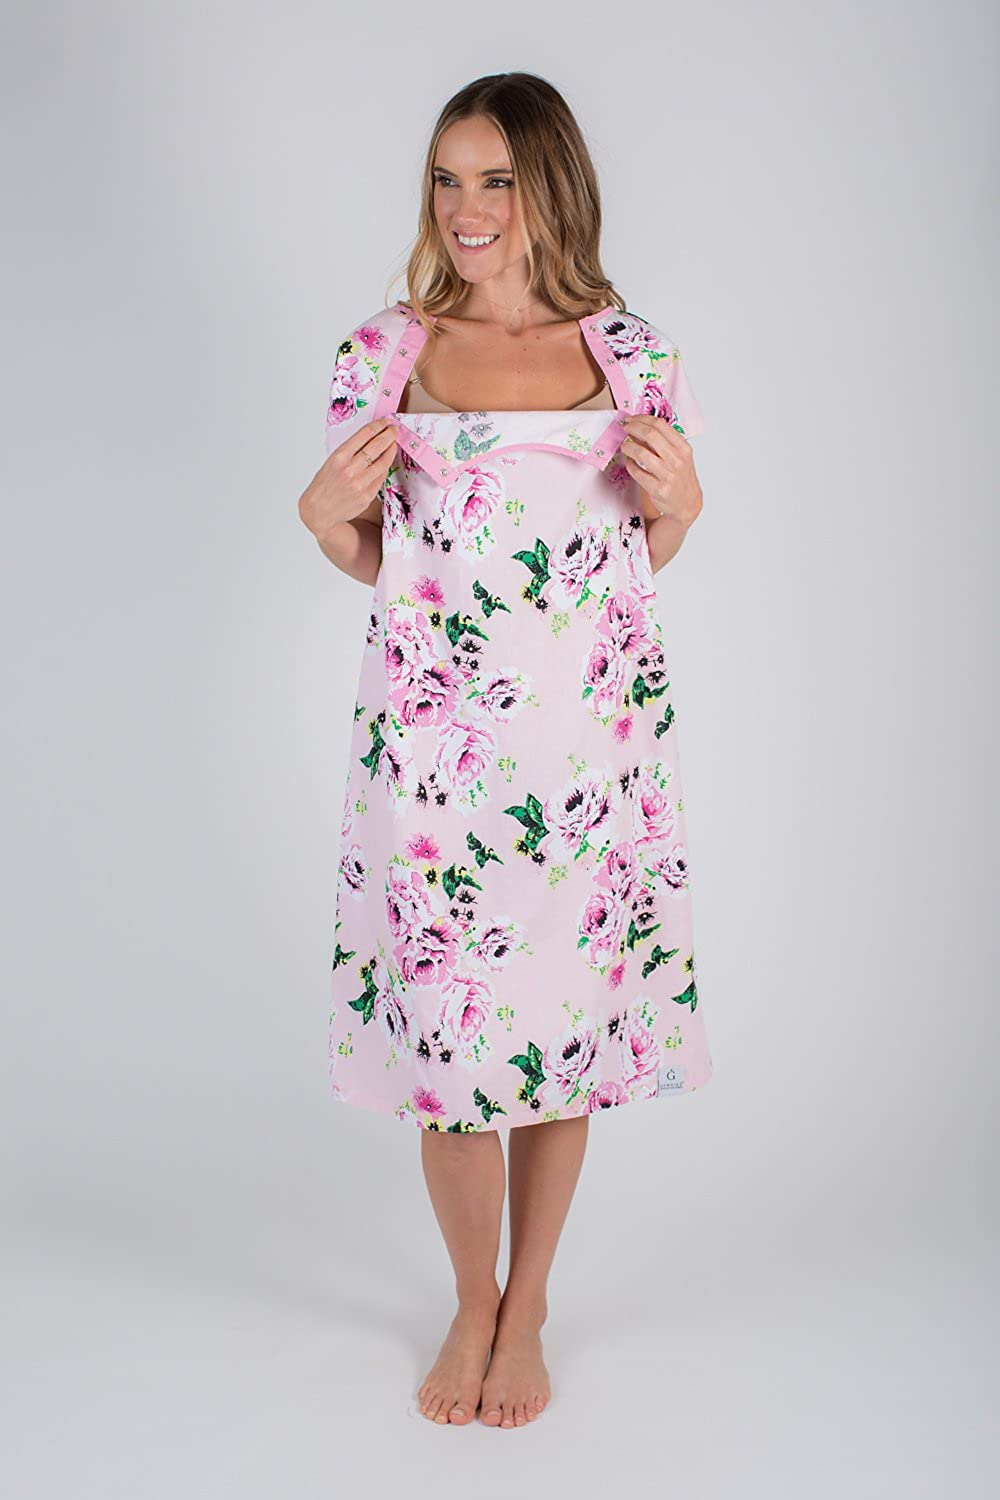 Funky Nice Hospital Gowns Ensign - Best Evening Gown Inspiration And ...